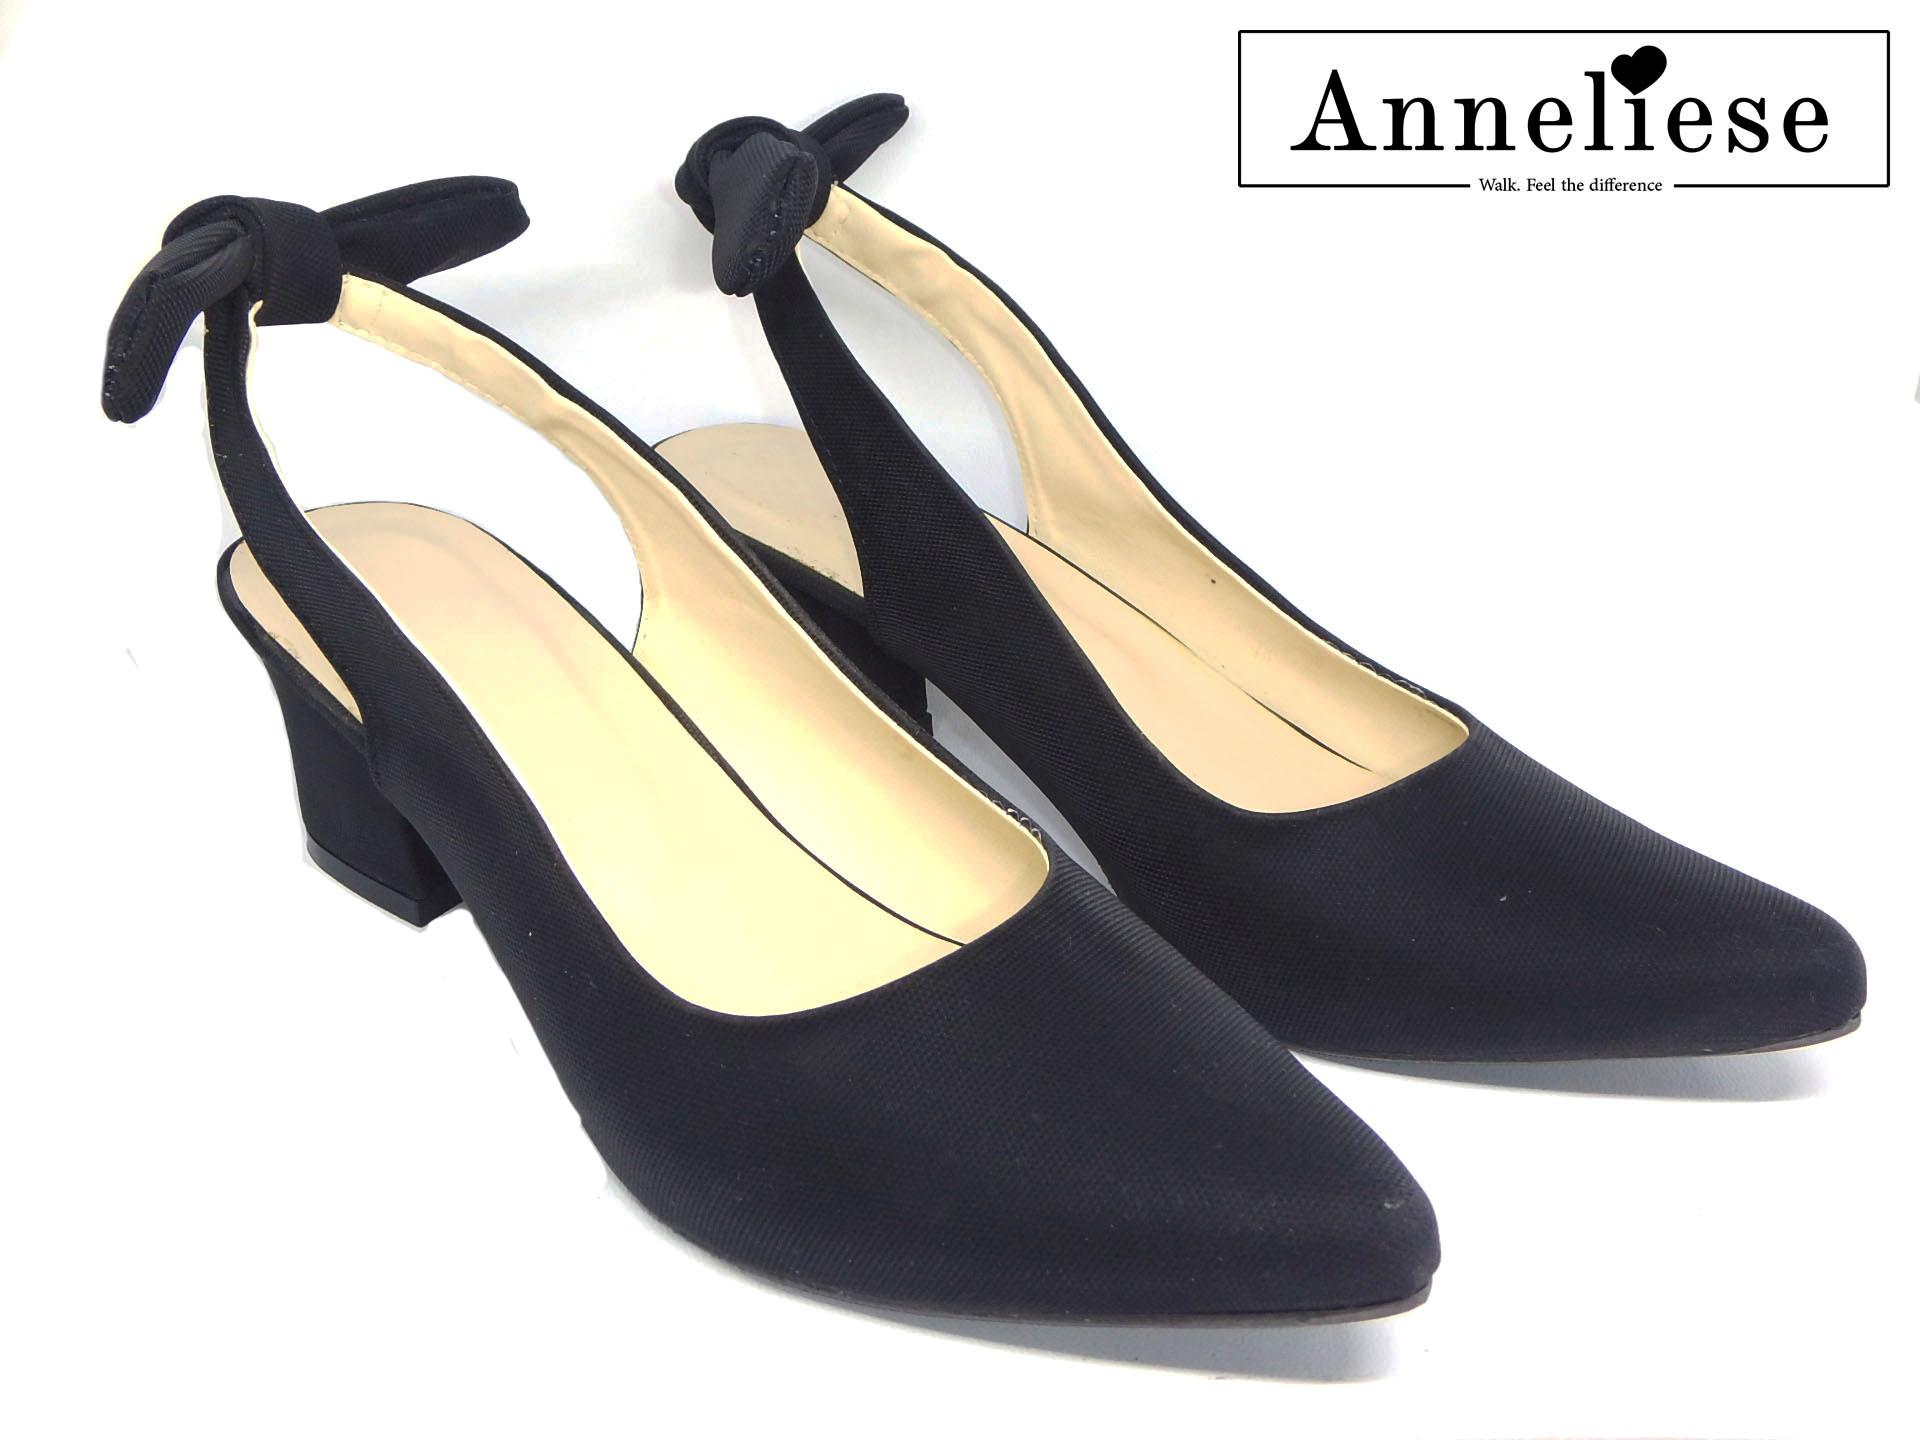 Buy Sell Cheapest Anneliese Sepatu Kets Best Quality Product Deals Flat Shoes Wanita Combine Kickers Original